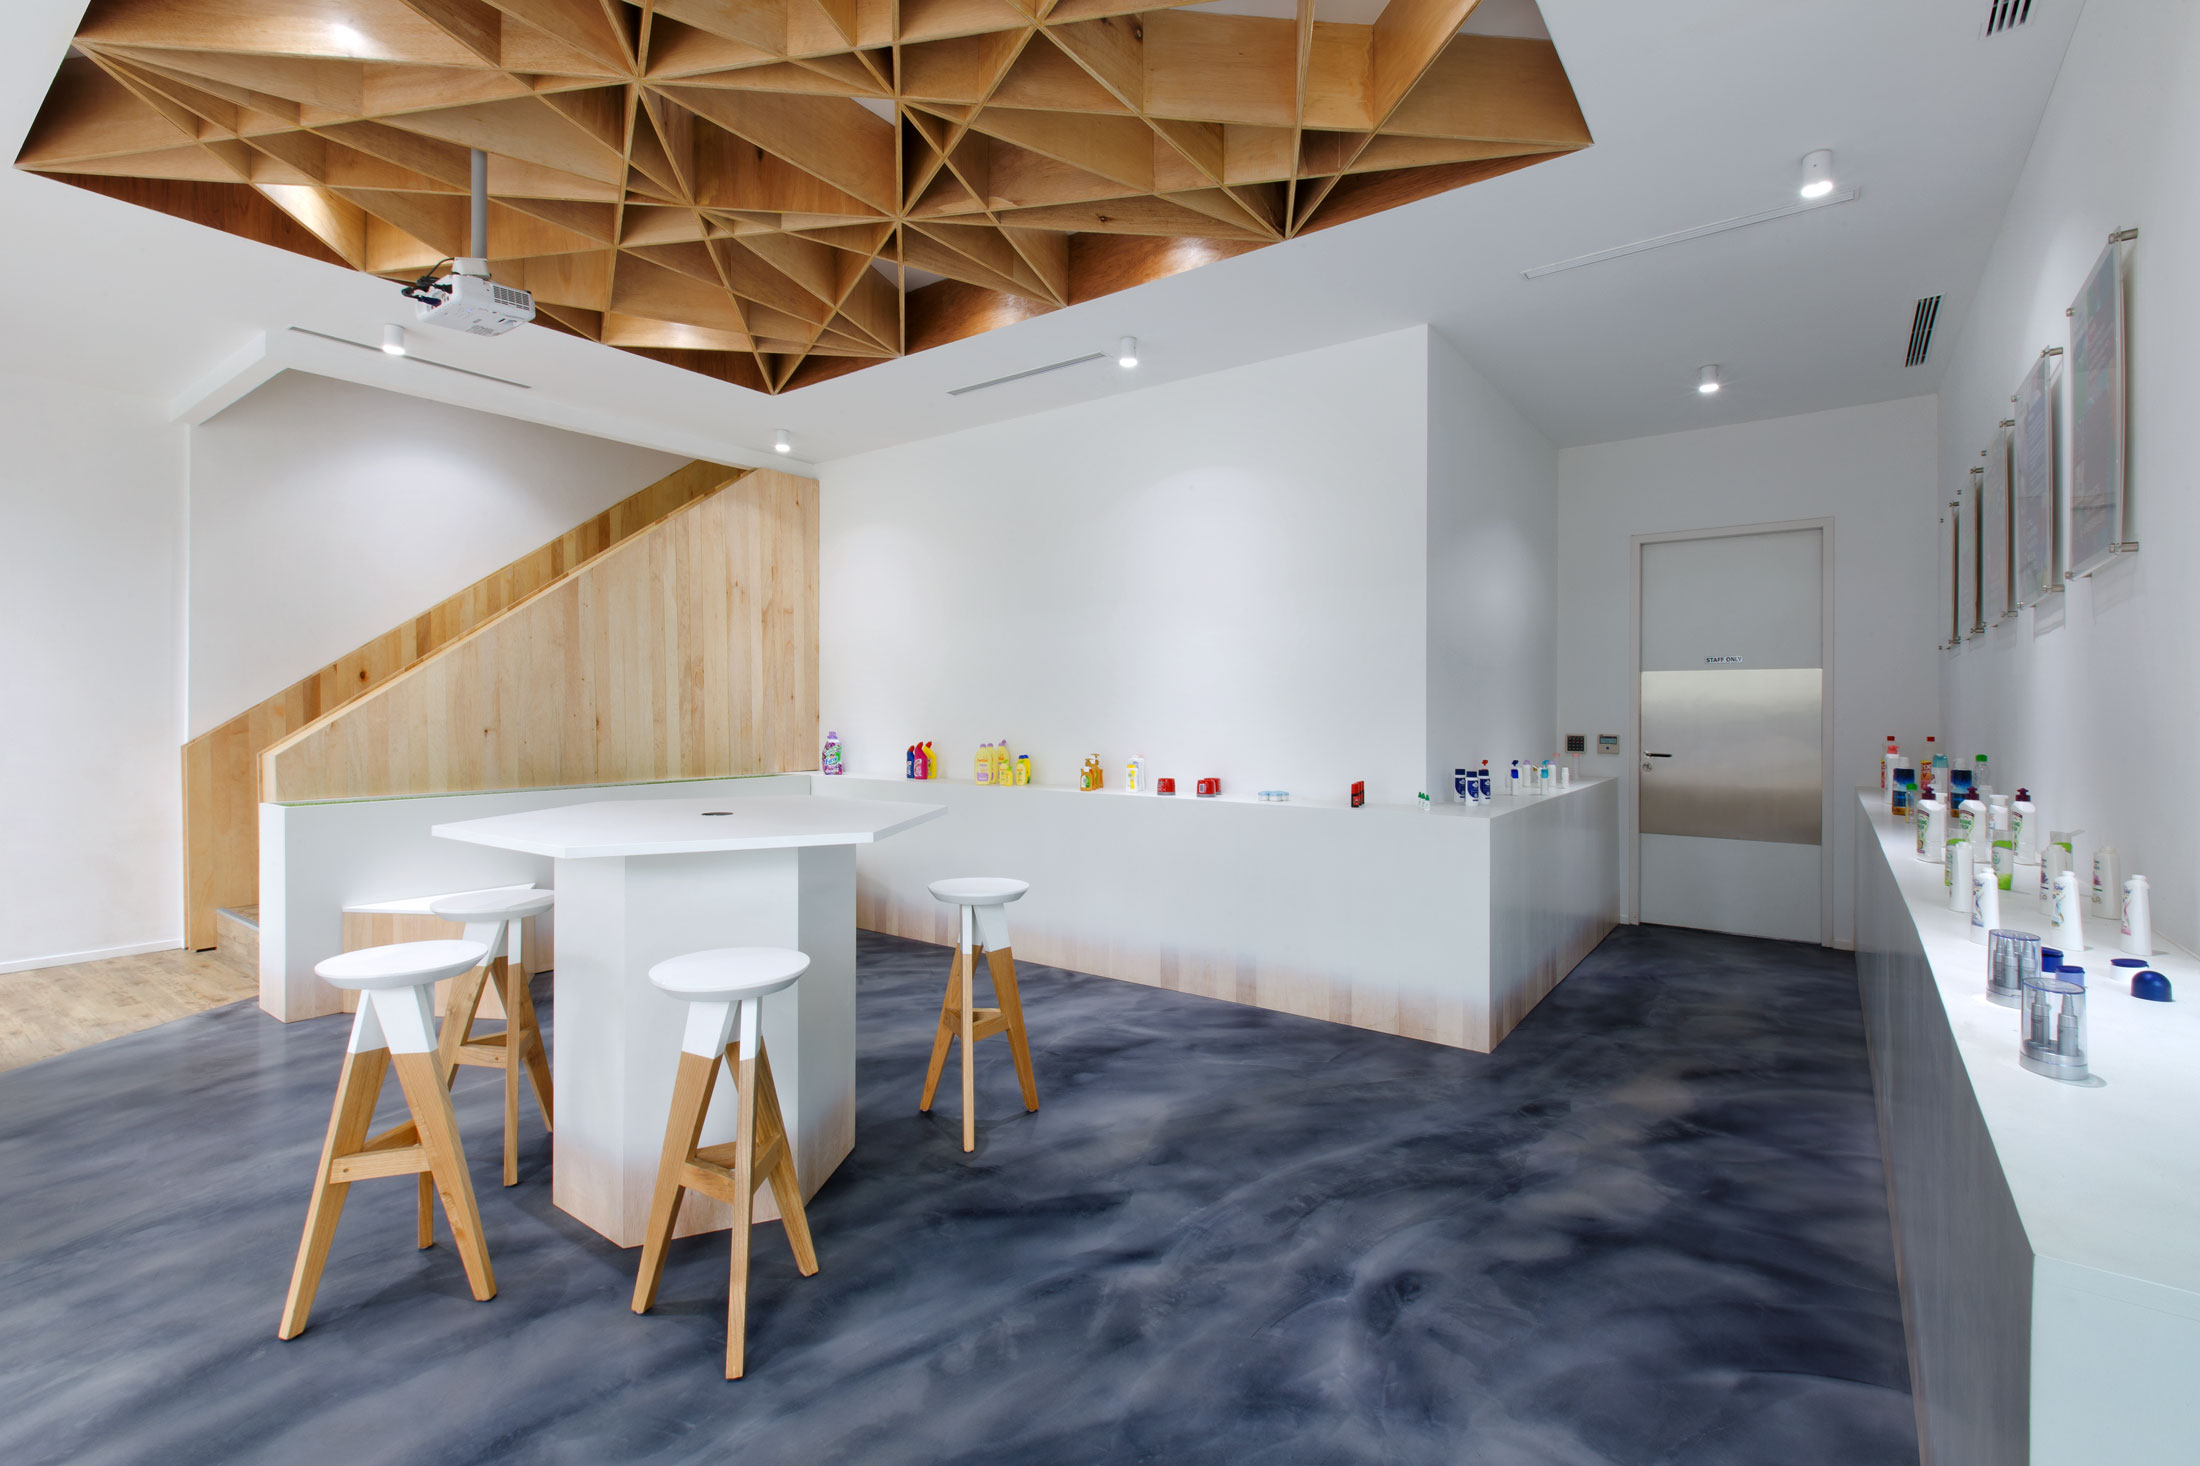 Product display and testing area for visitors of Danypack. Interior Design + Build by AVIP.